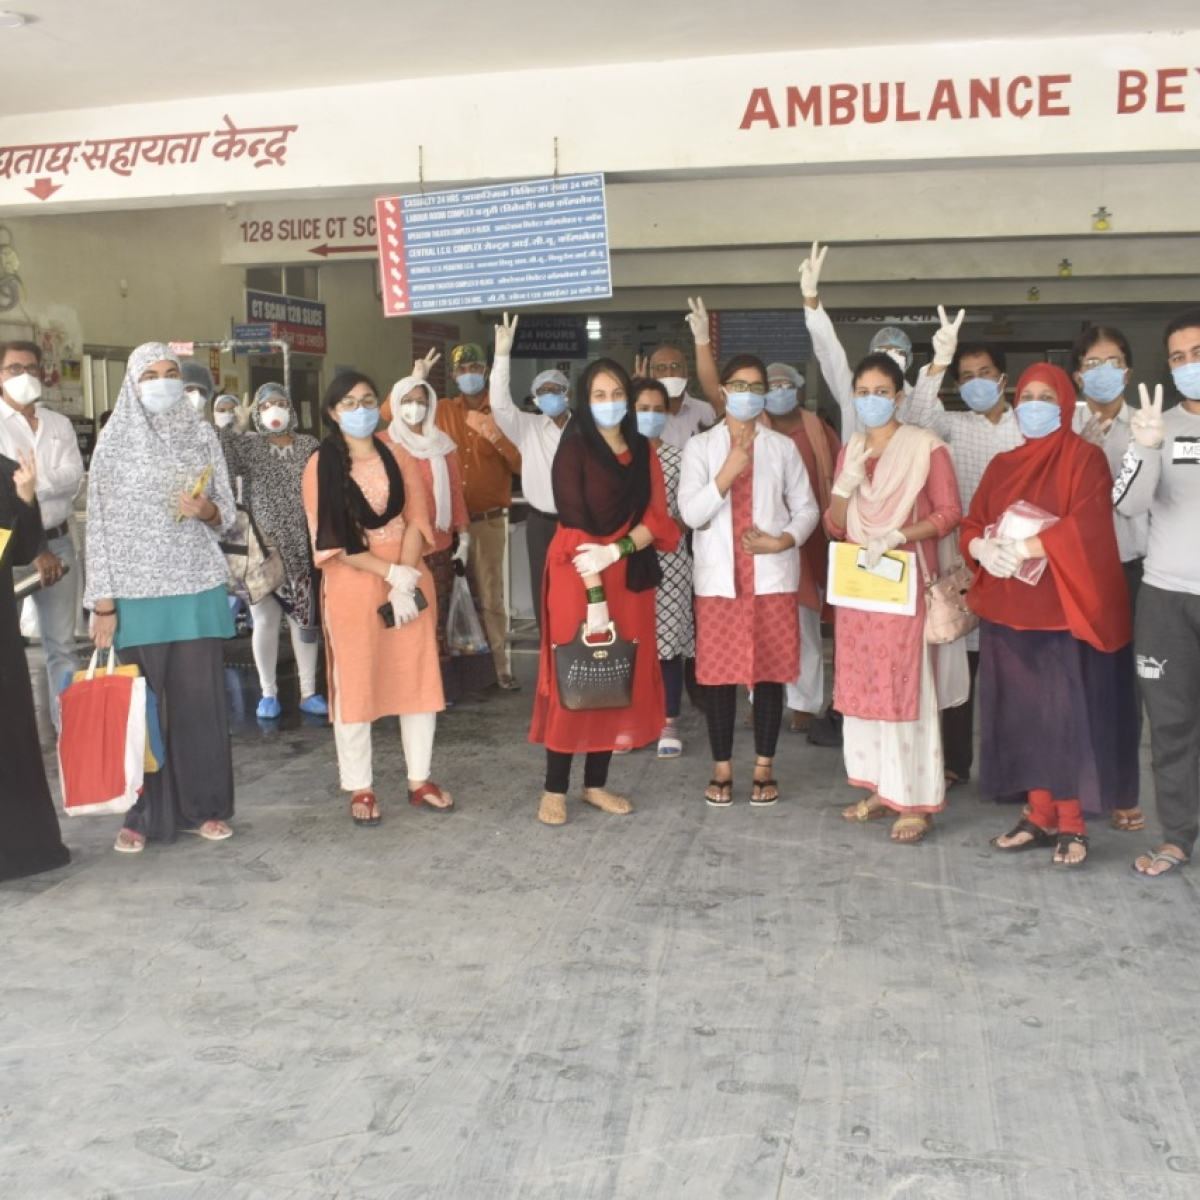 Health Ministry revises discharge policy for COVID-19 patients: Here are some FAQs